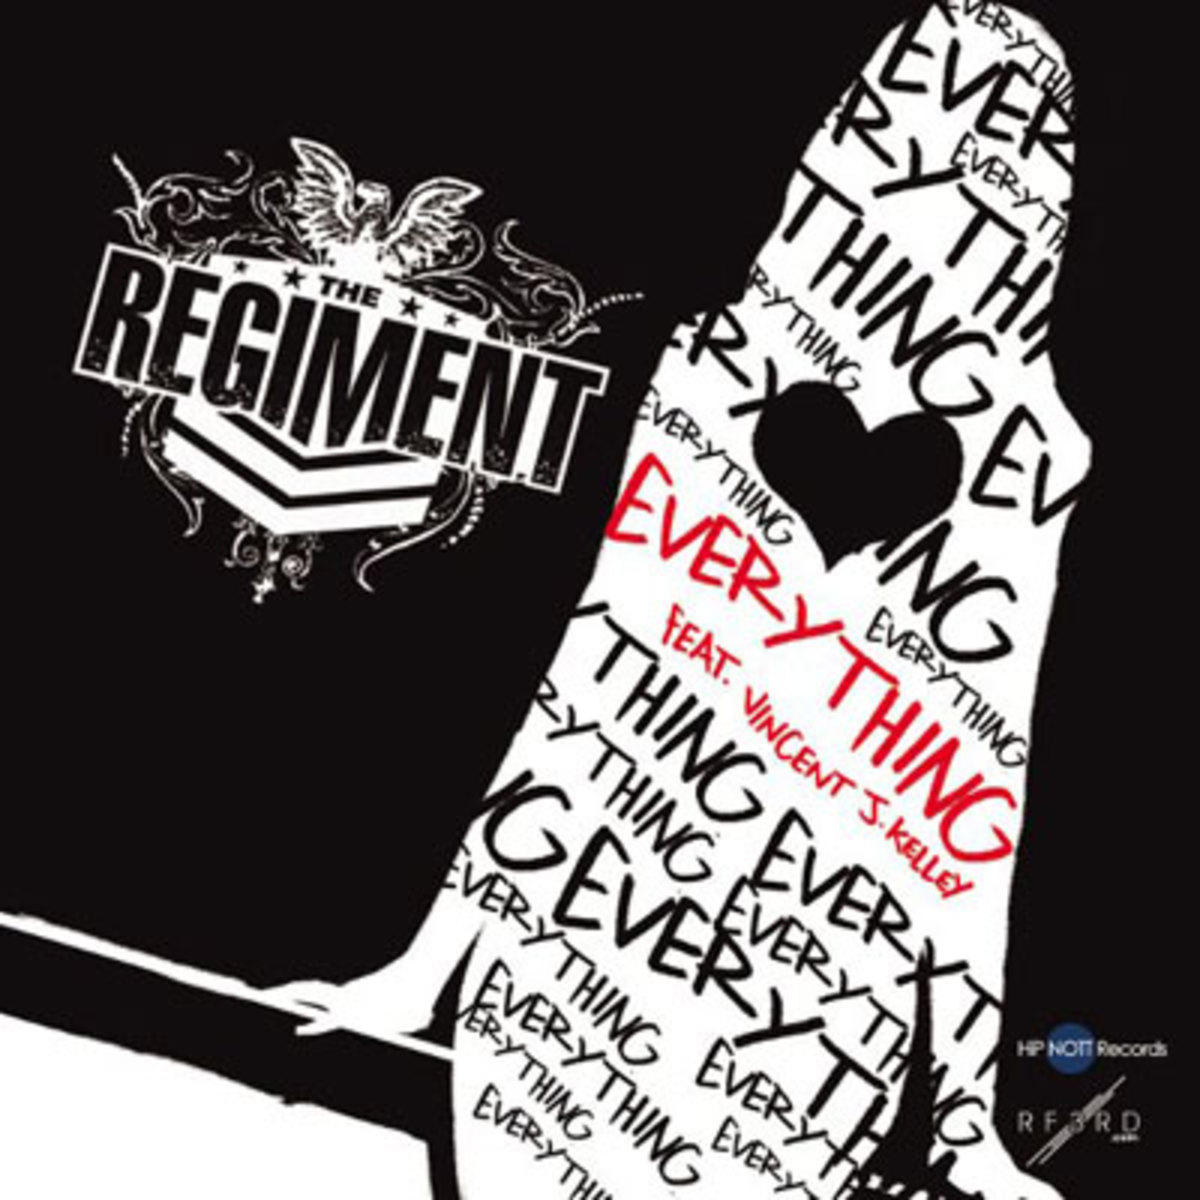 theregiment-everything.jpg